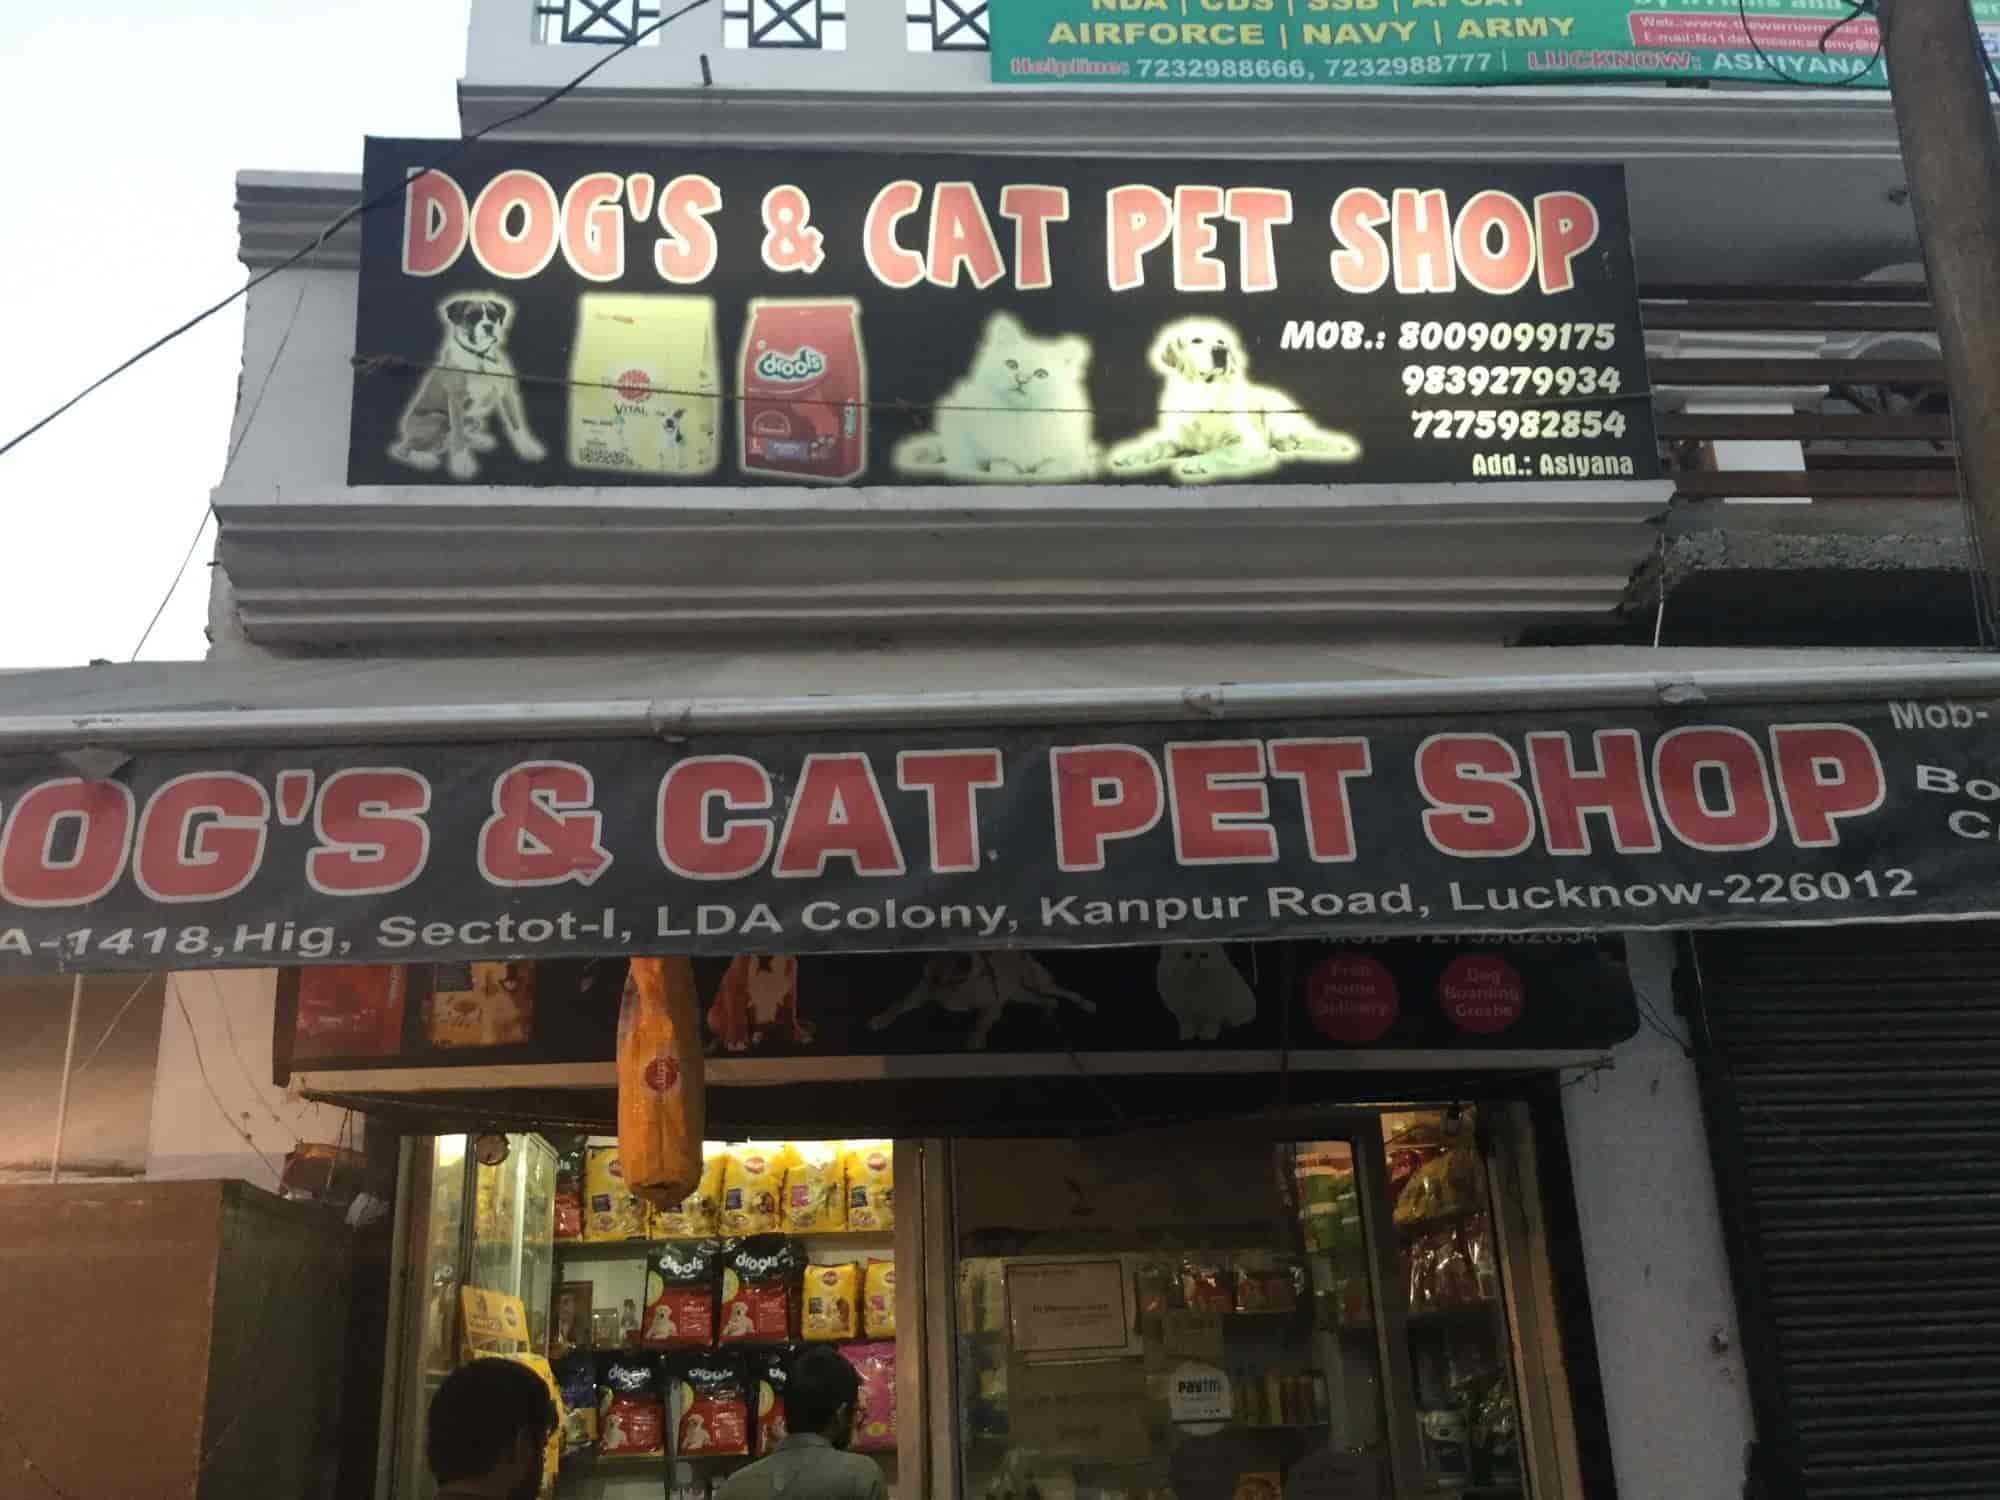 Dogs & Cat Pet Shop, Aashiyana - Pet Shops For Dog in Lucknow - Justdial